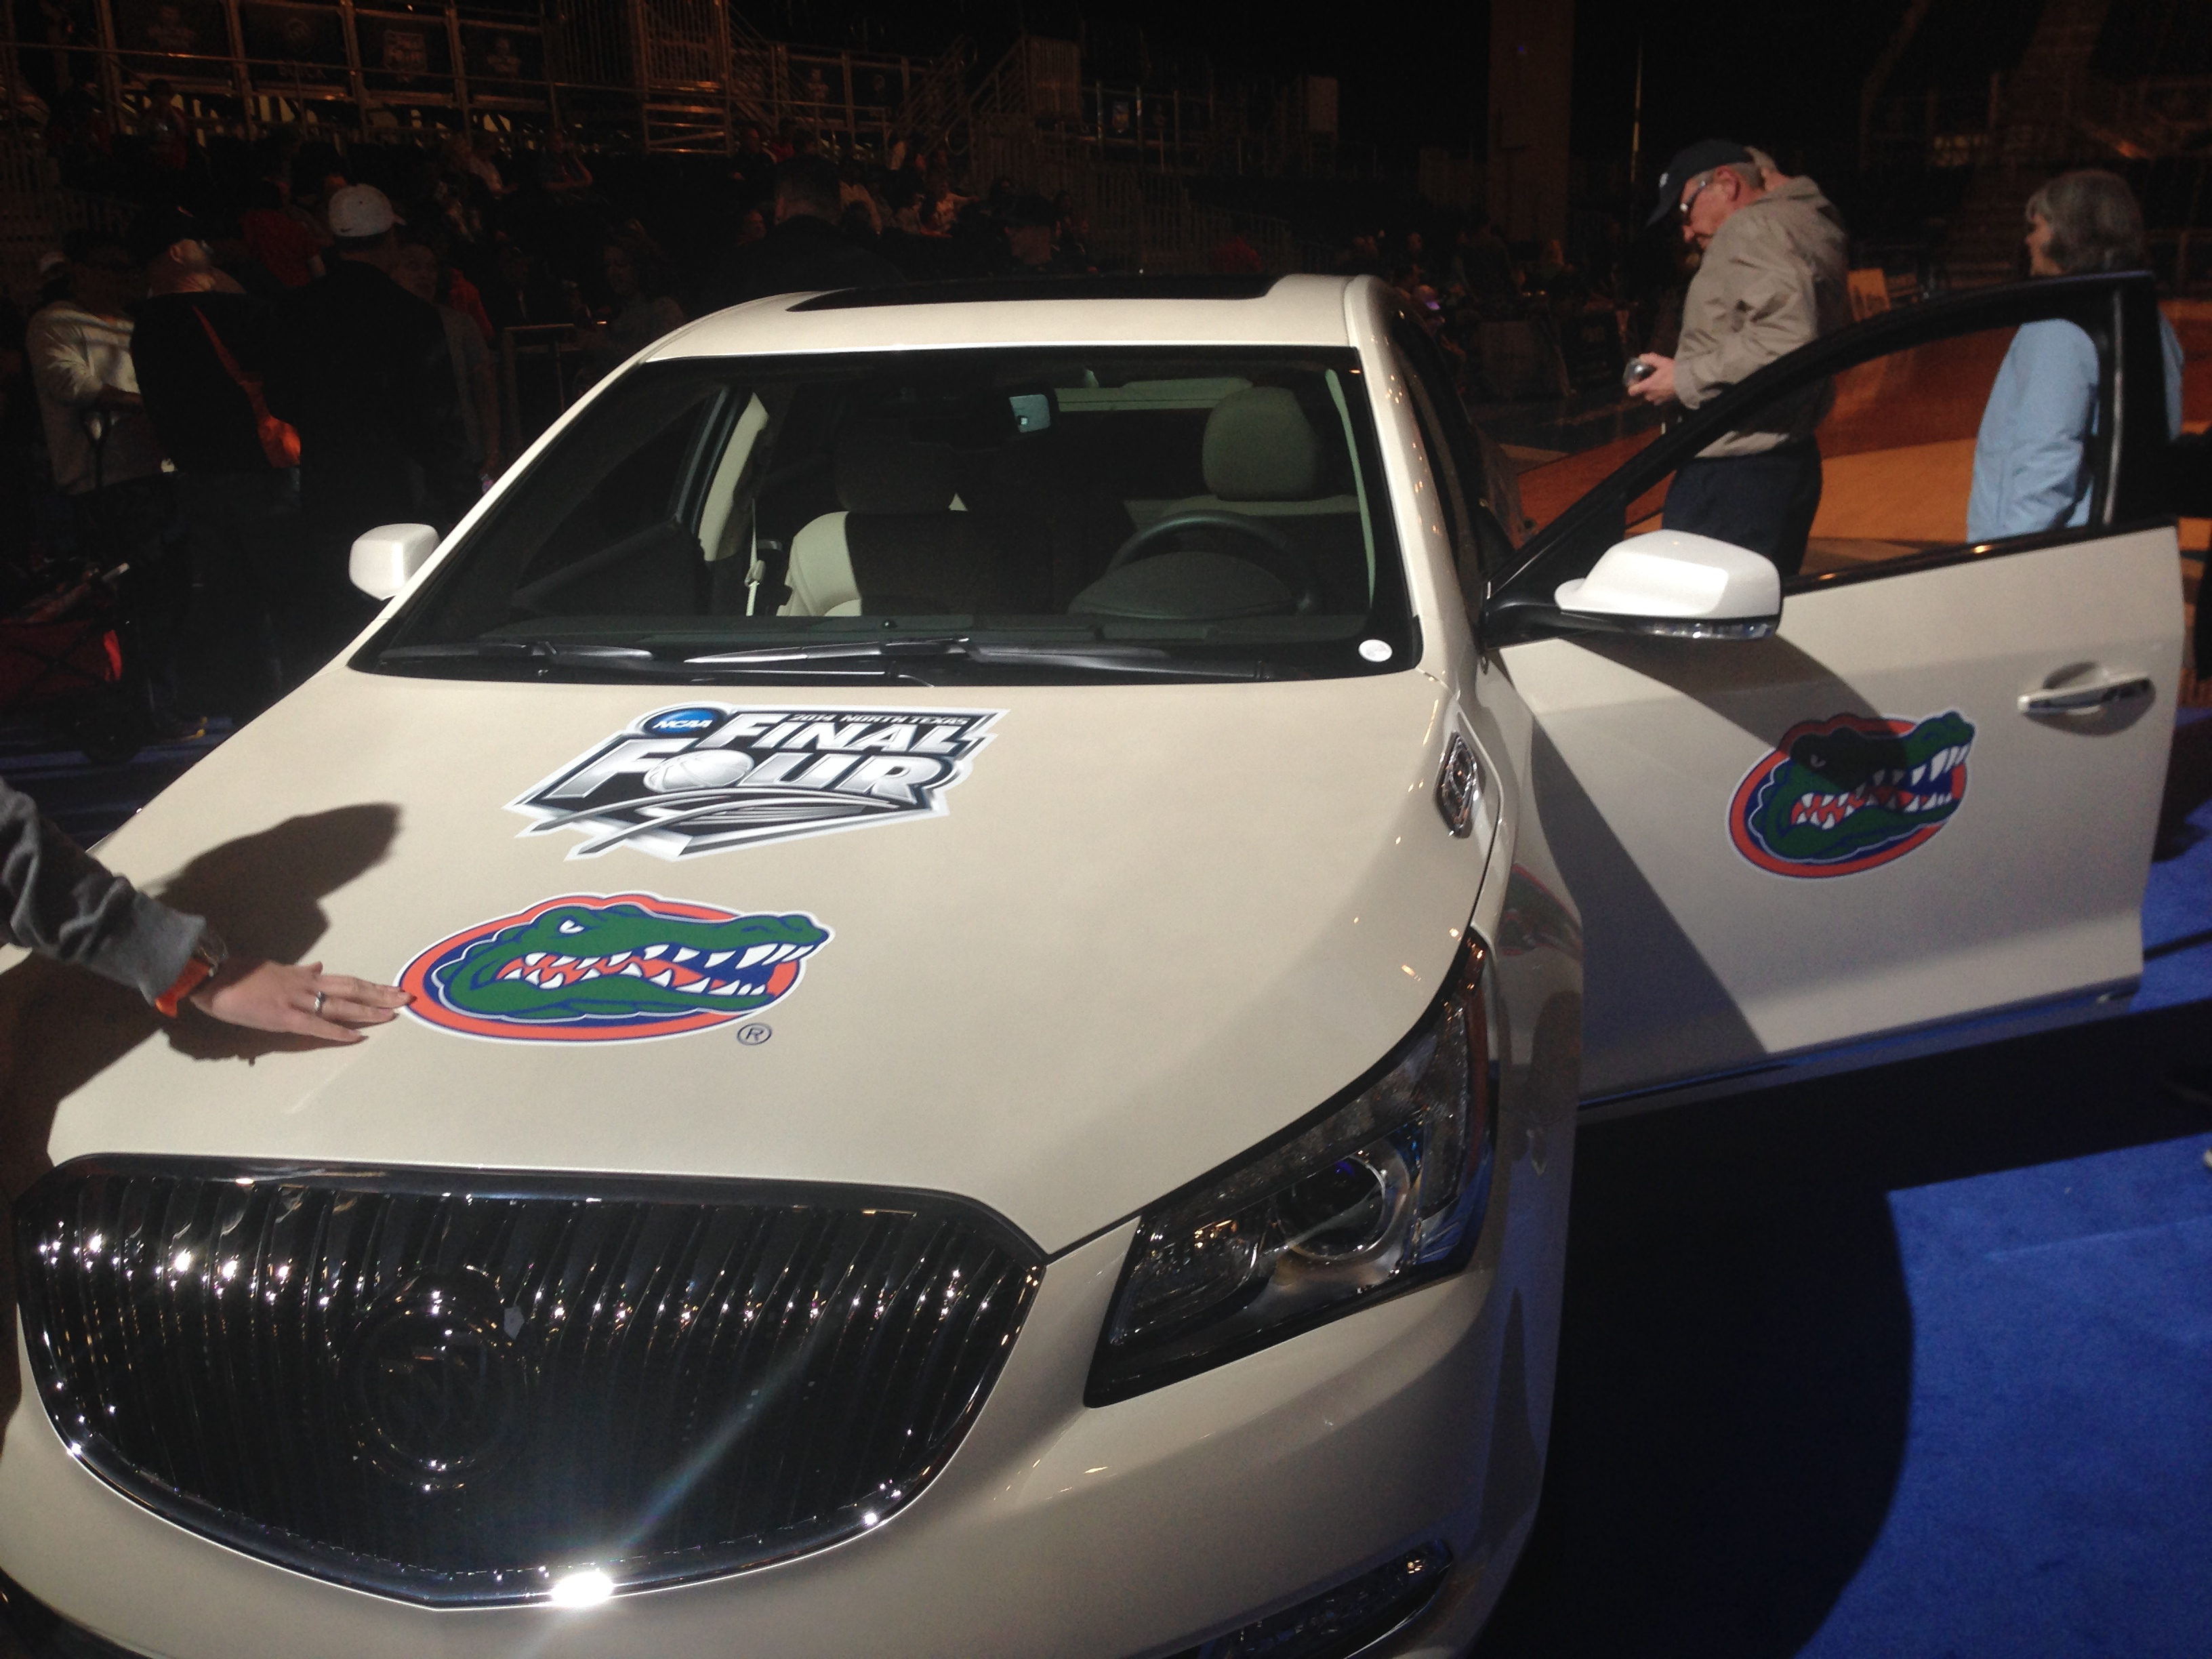 Gator car at  Bracket Town